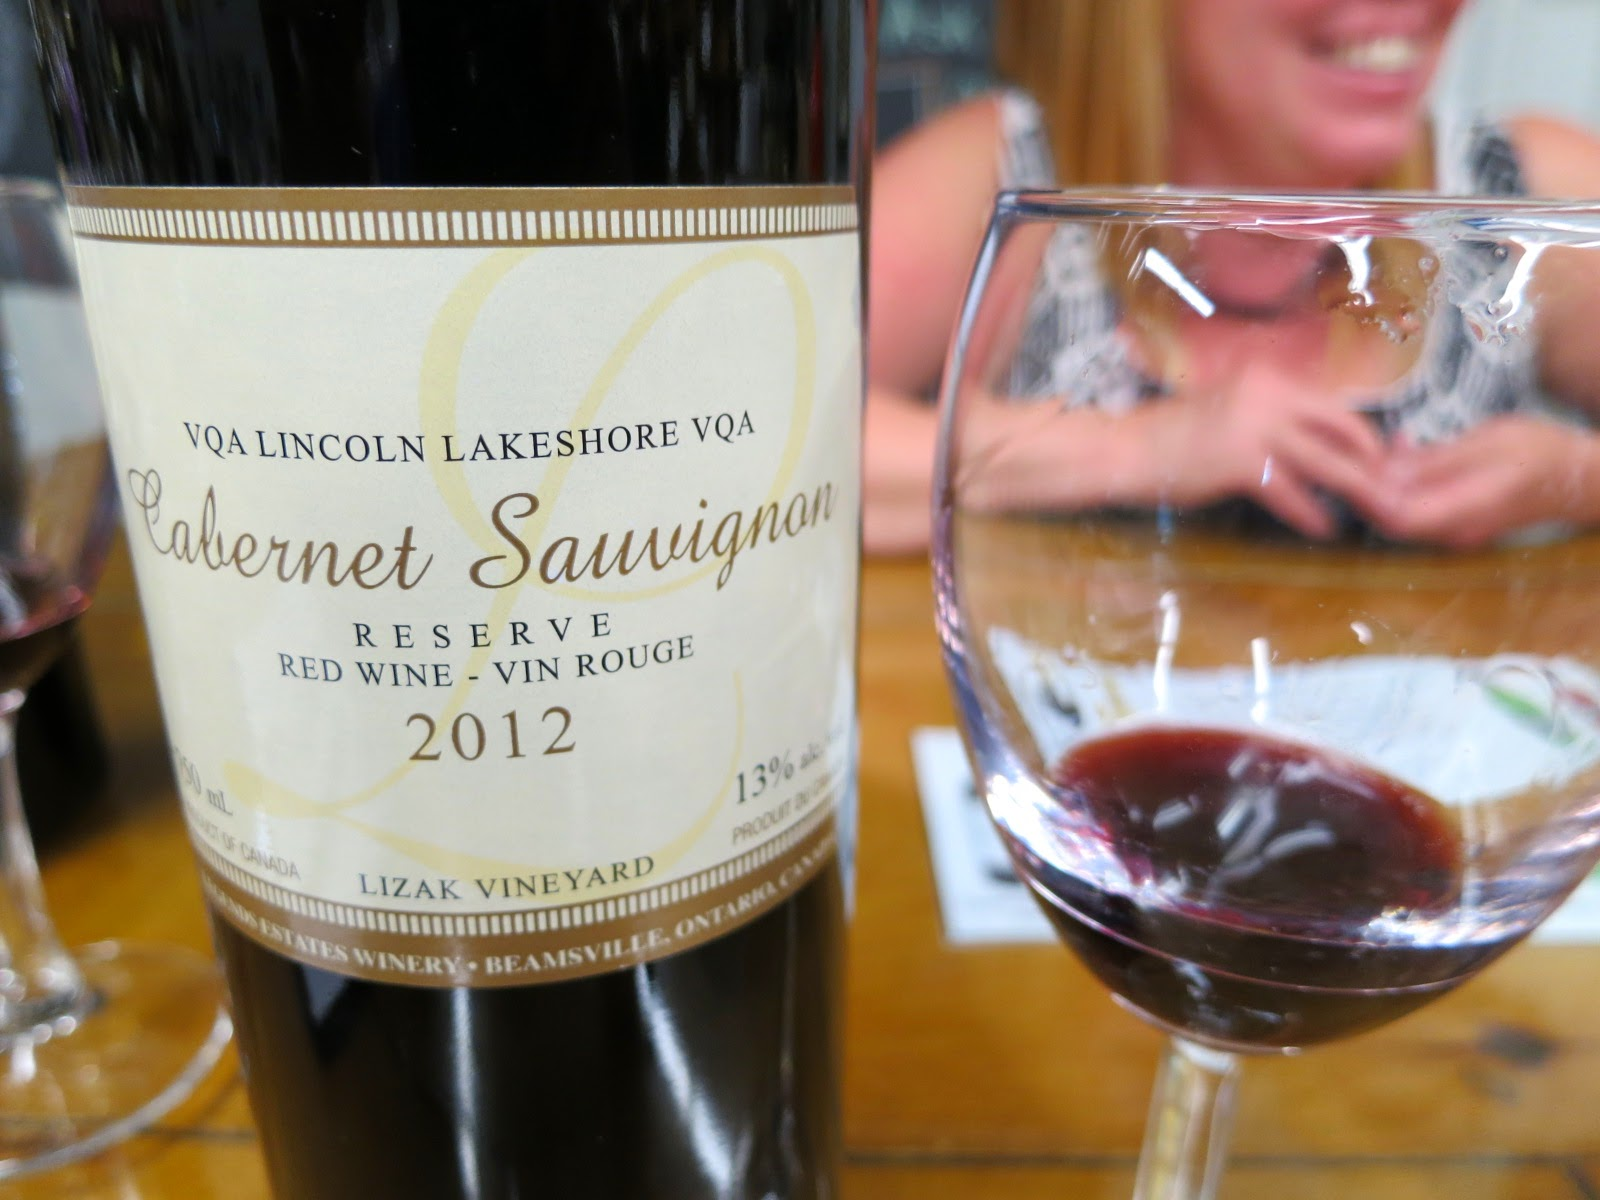 Wine Review of 2012 Legends Estates Cabernet Sauvignon from Lizak Vineyard, VQA Lincoln Lakeshore